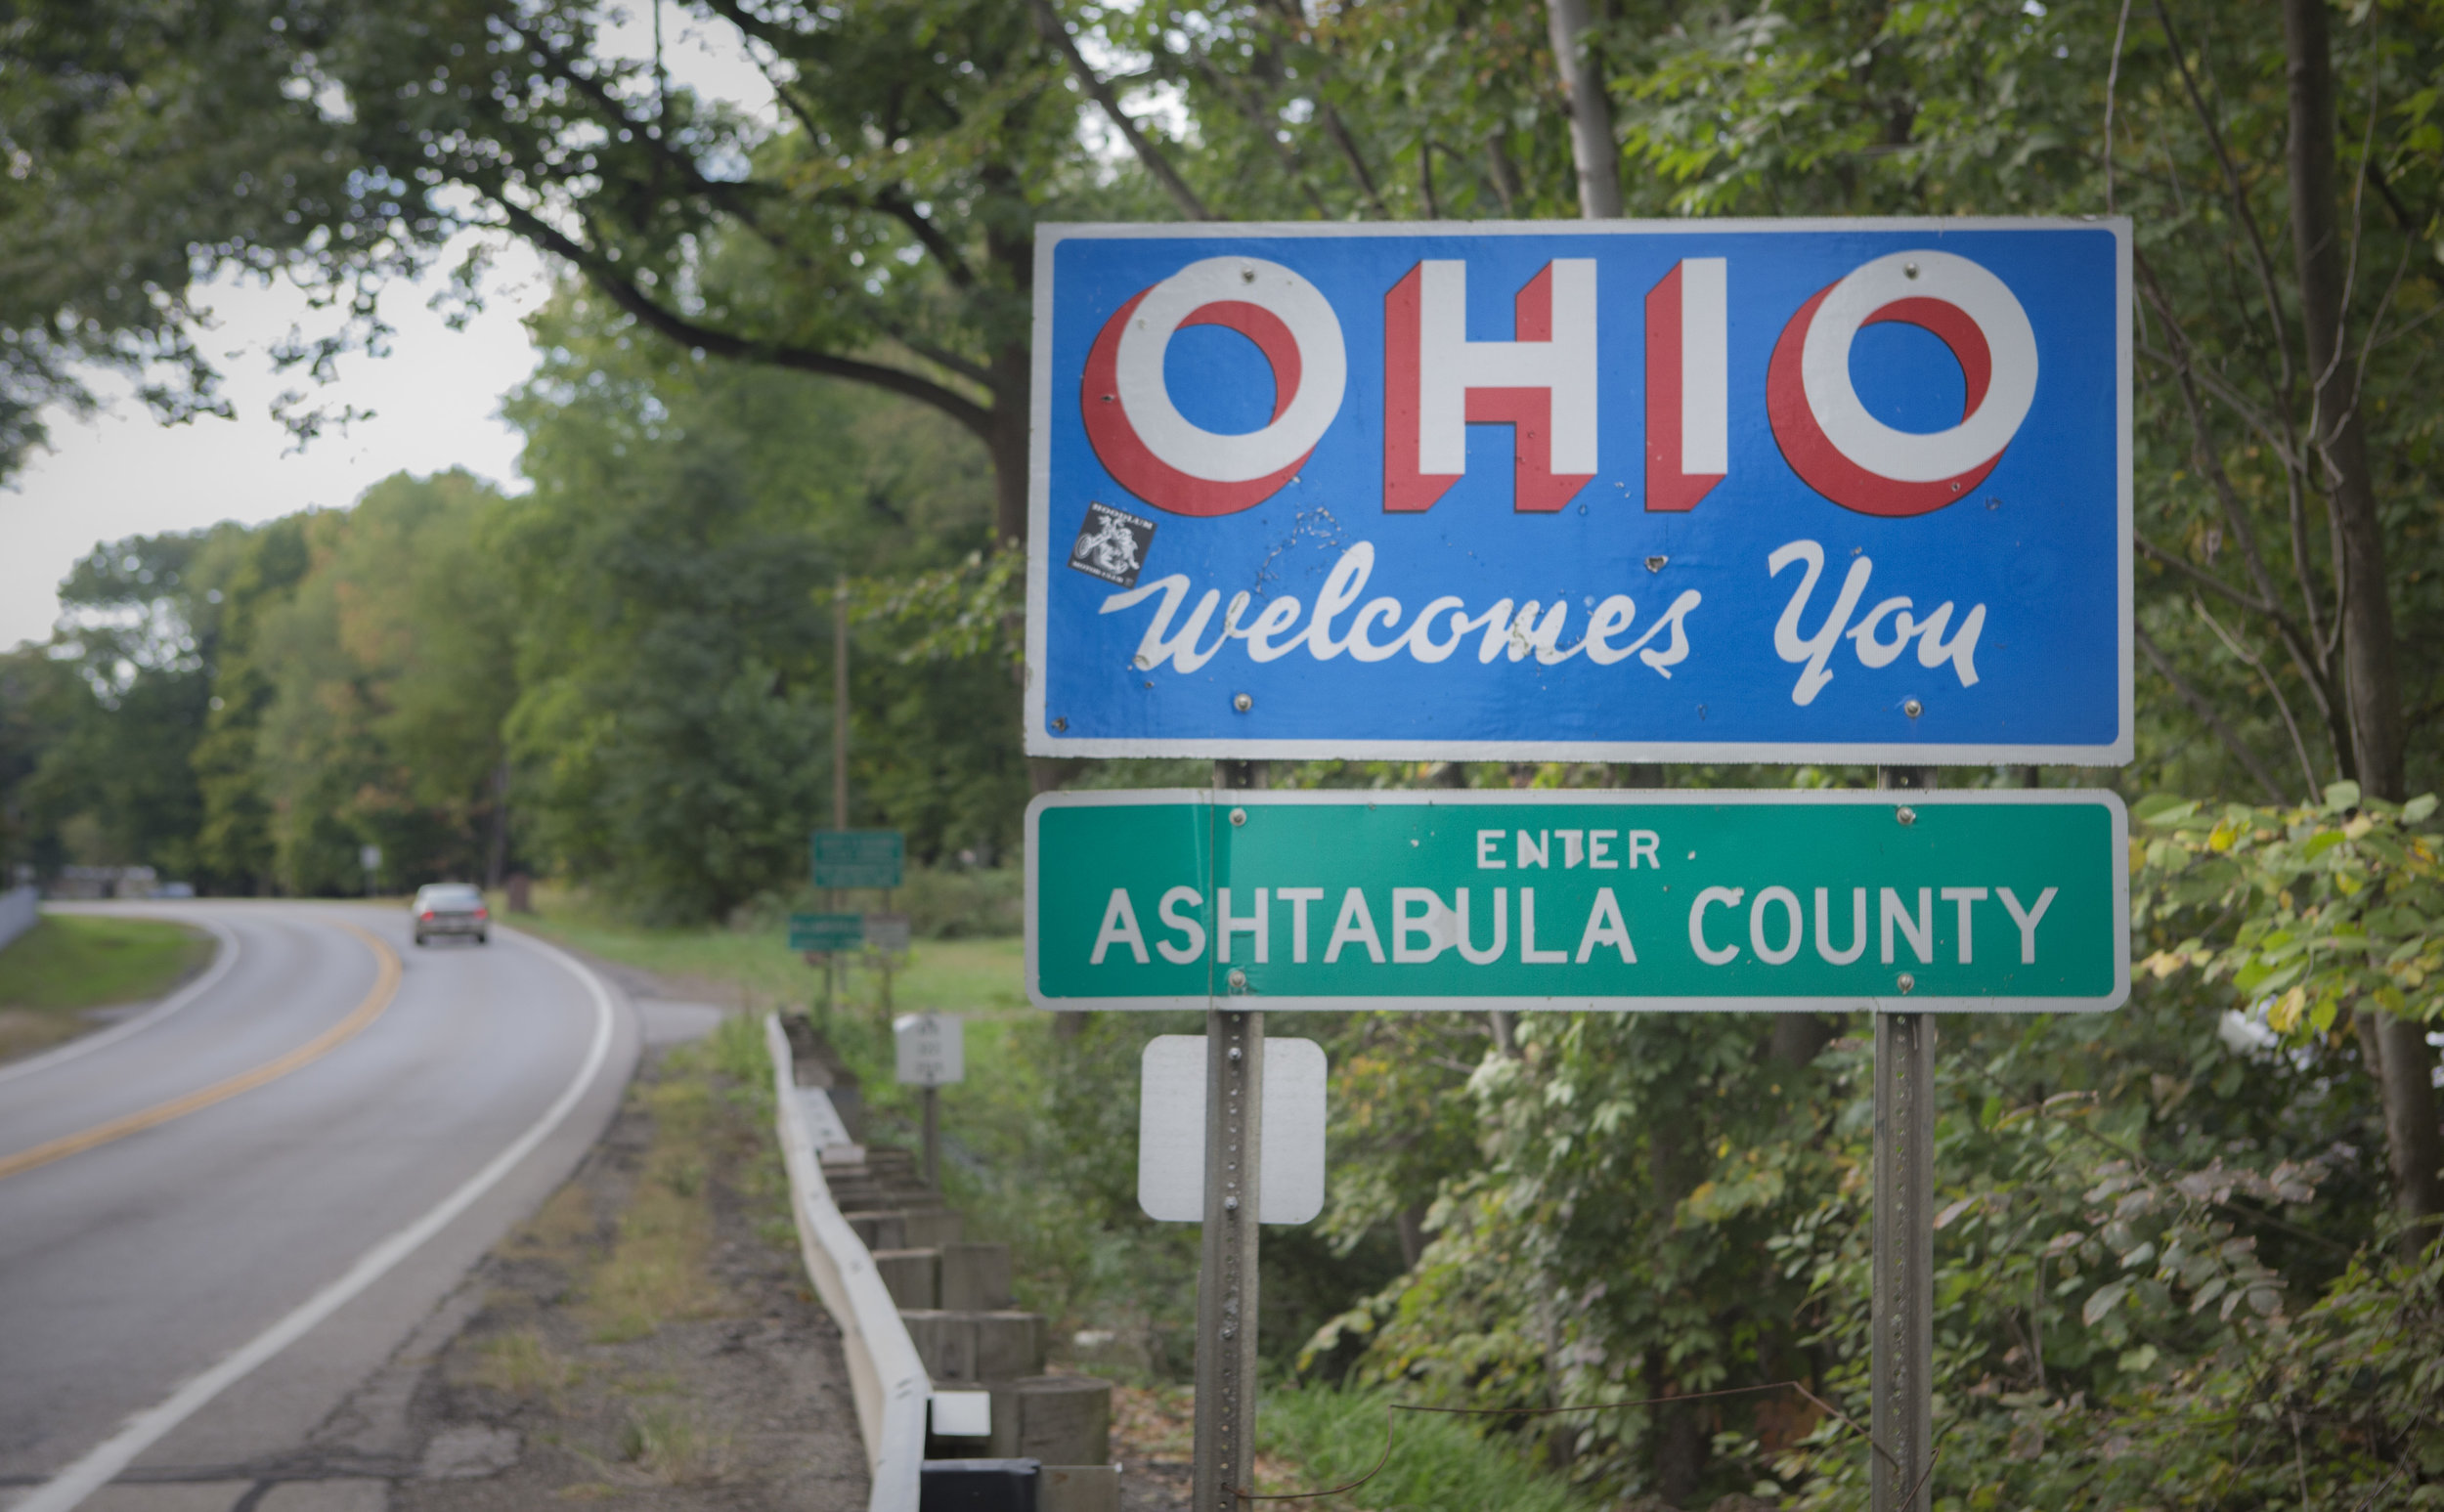 2016.10.02 - Ashtabula County_ Ohio_01.jpg